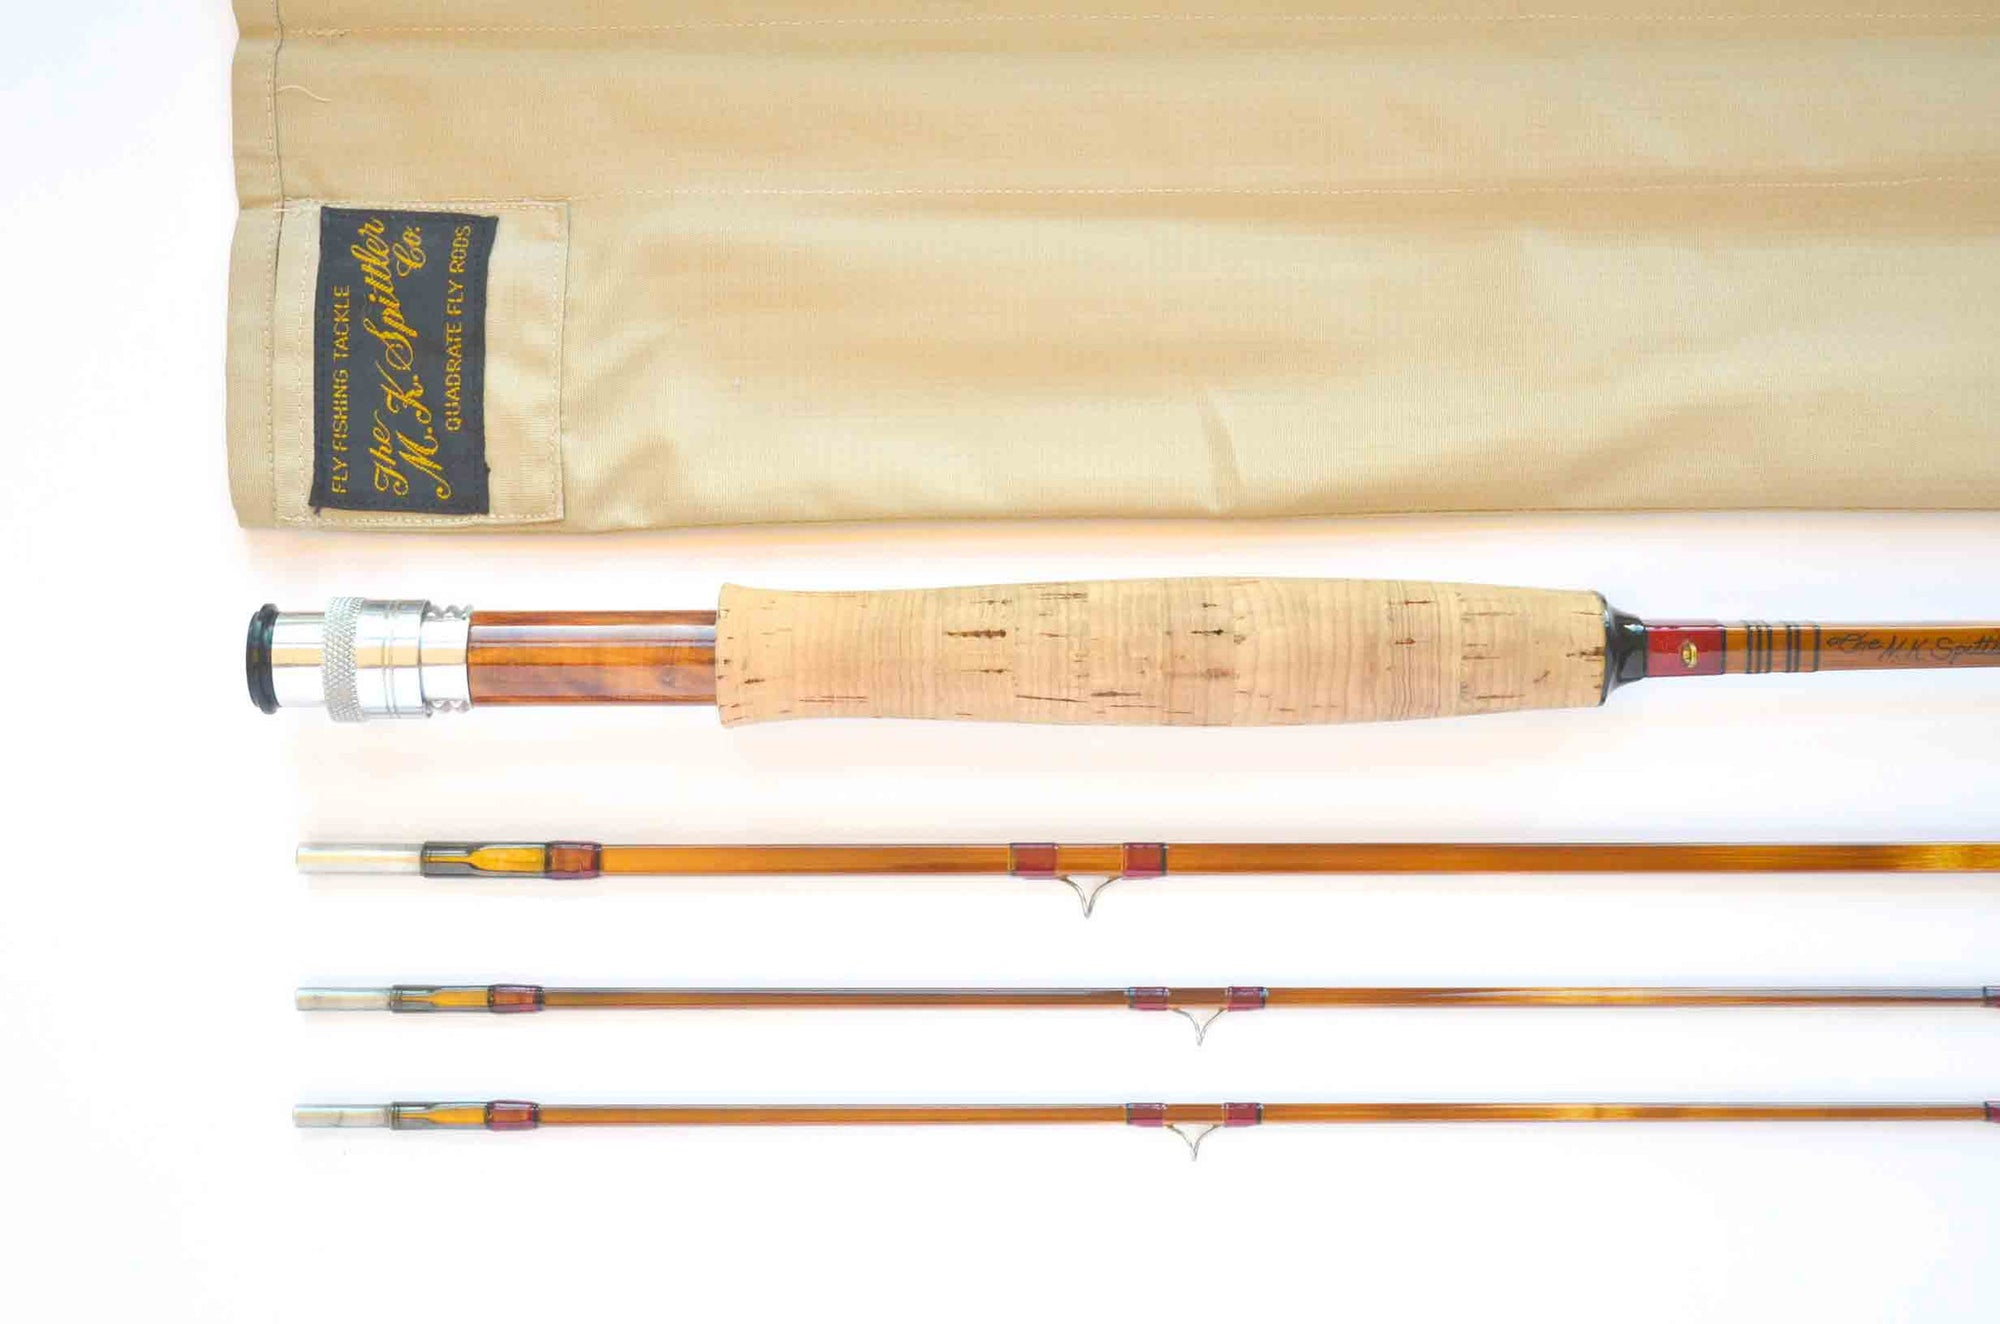 MK Spittler Quad Fluted Hollowbuilt Fly Rod 9' 3/2 #4